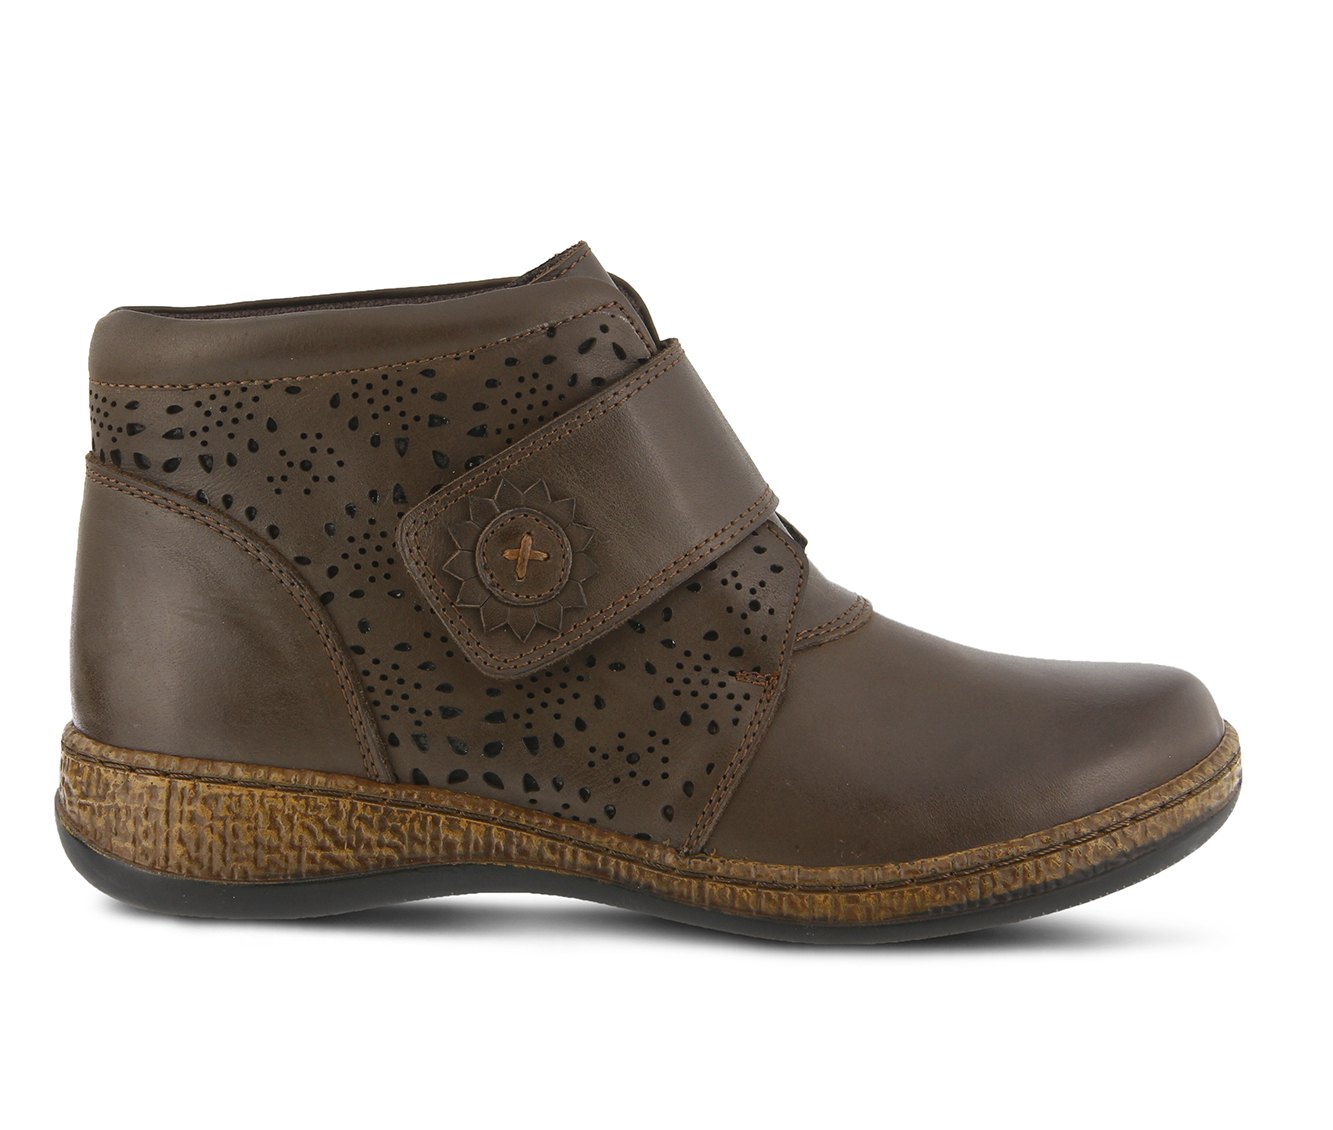 SPRING STEP Souzala Women's Boots (Brown Leather)